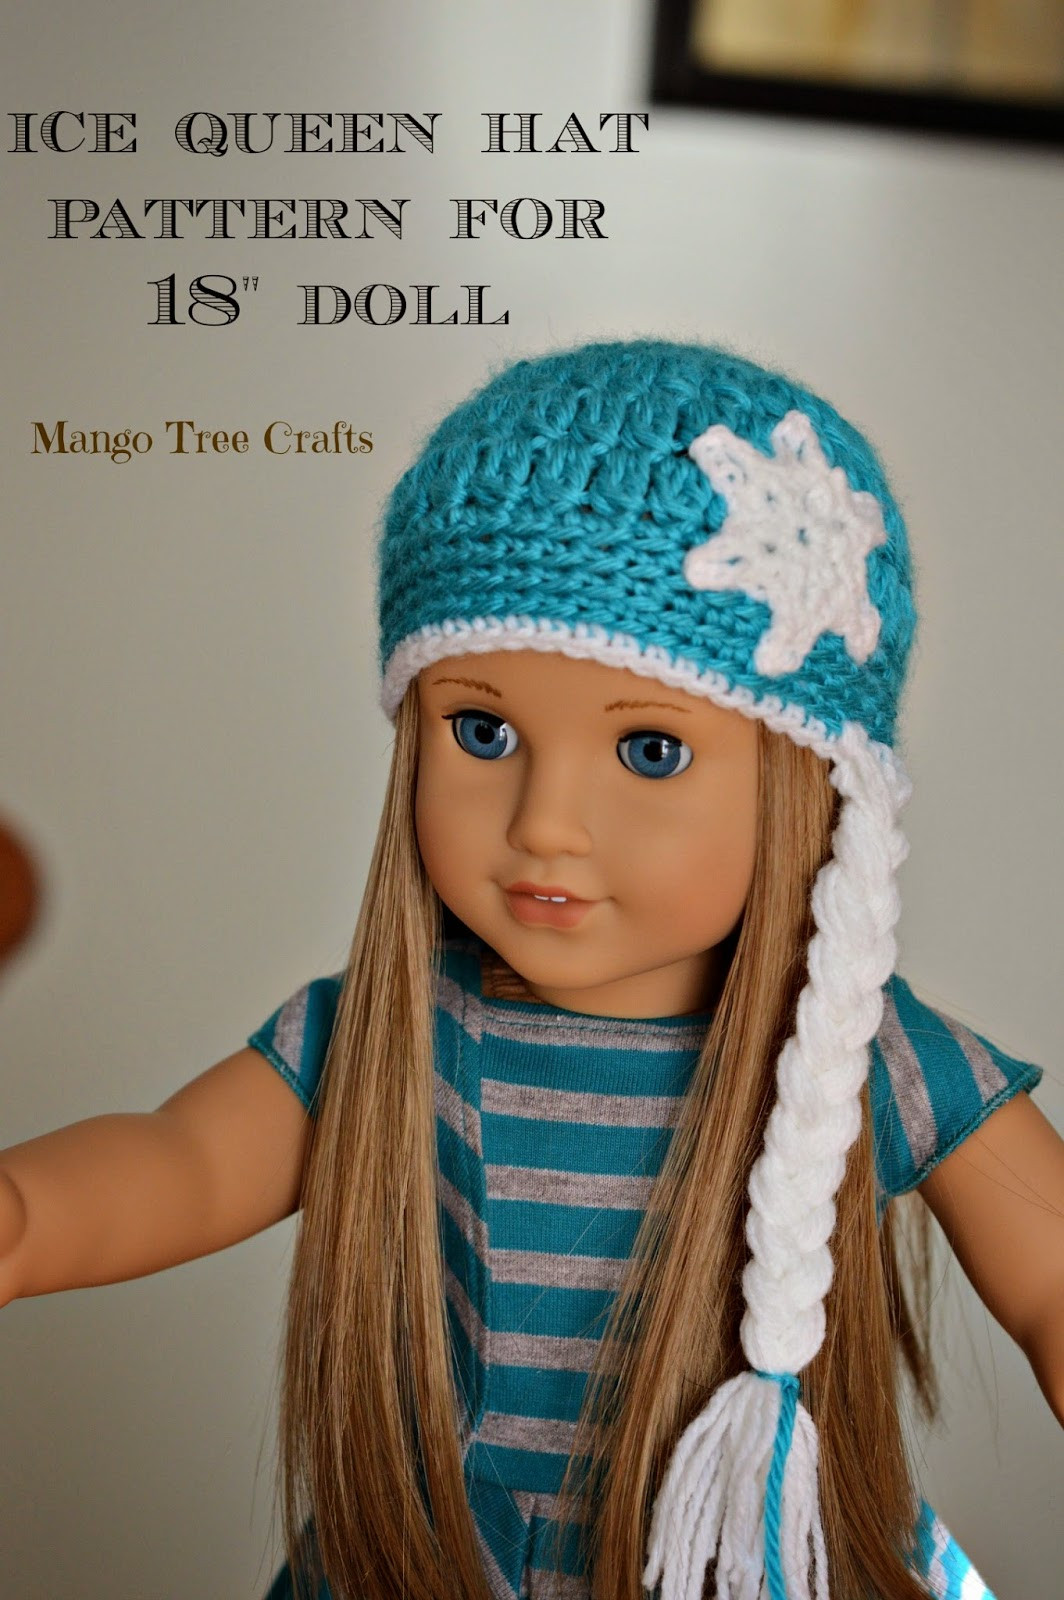 Crochet Girl Hat Beautiful Ice Queen Crochet Hat Pattern for 18″ American Girl Doll Of Superb 47 Pics Crochet Girl Hat